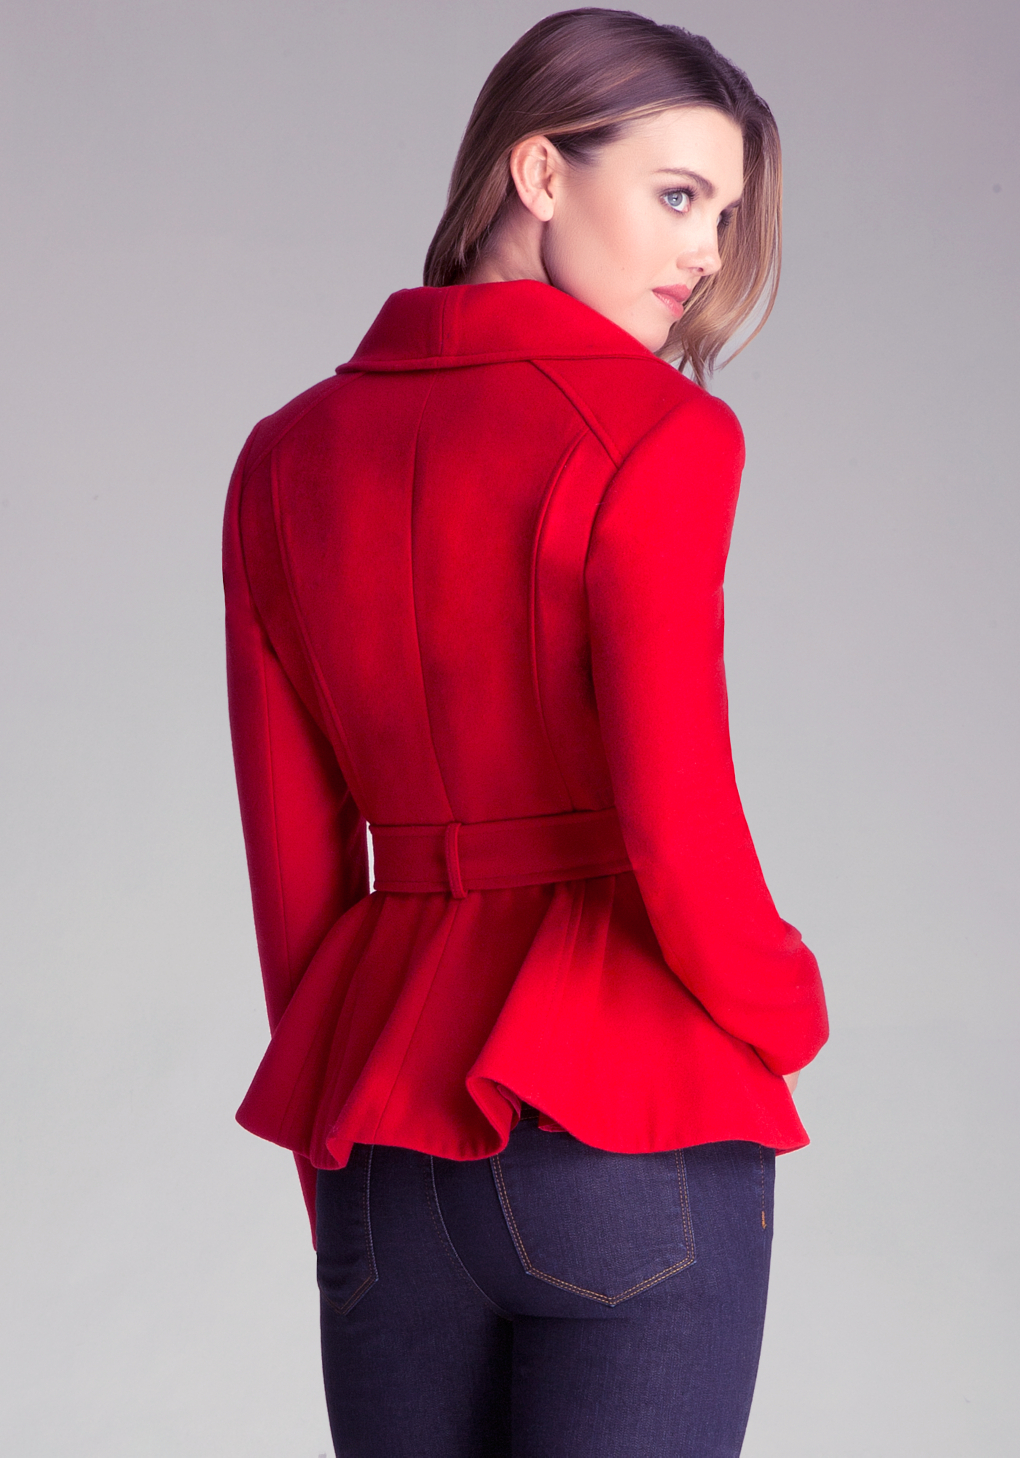 Find great deals on eBay for red peplum jacket. Shop with confidence.